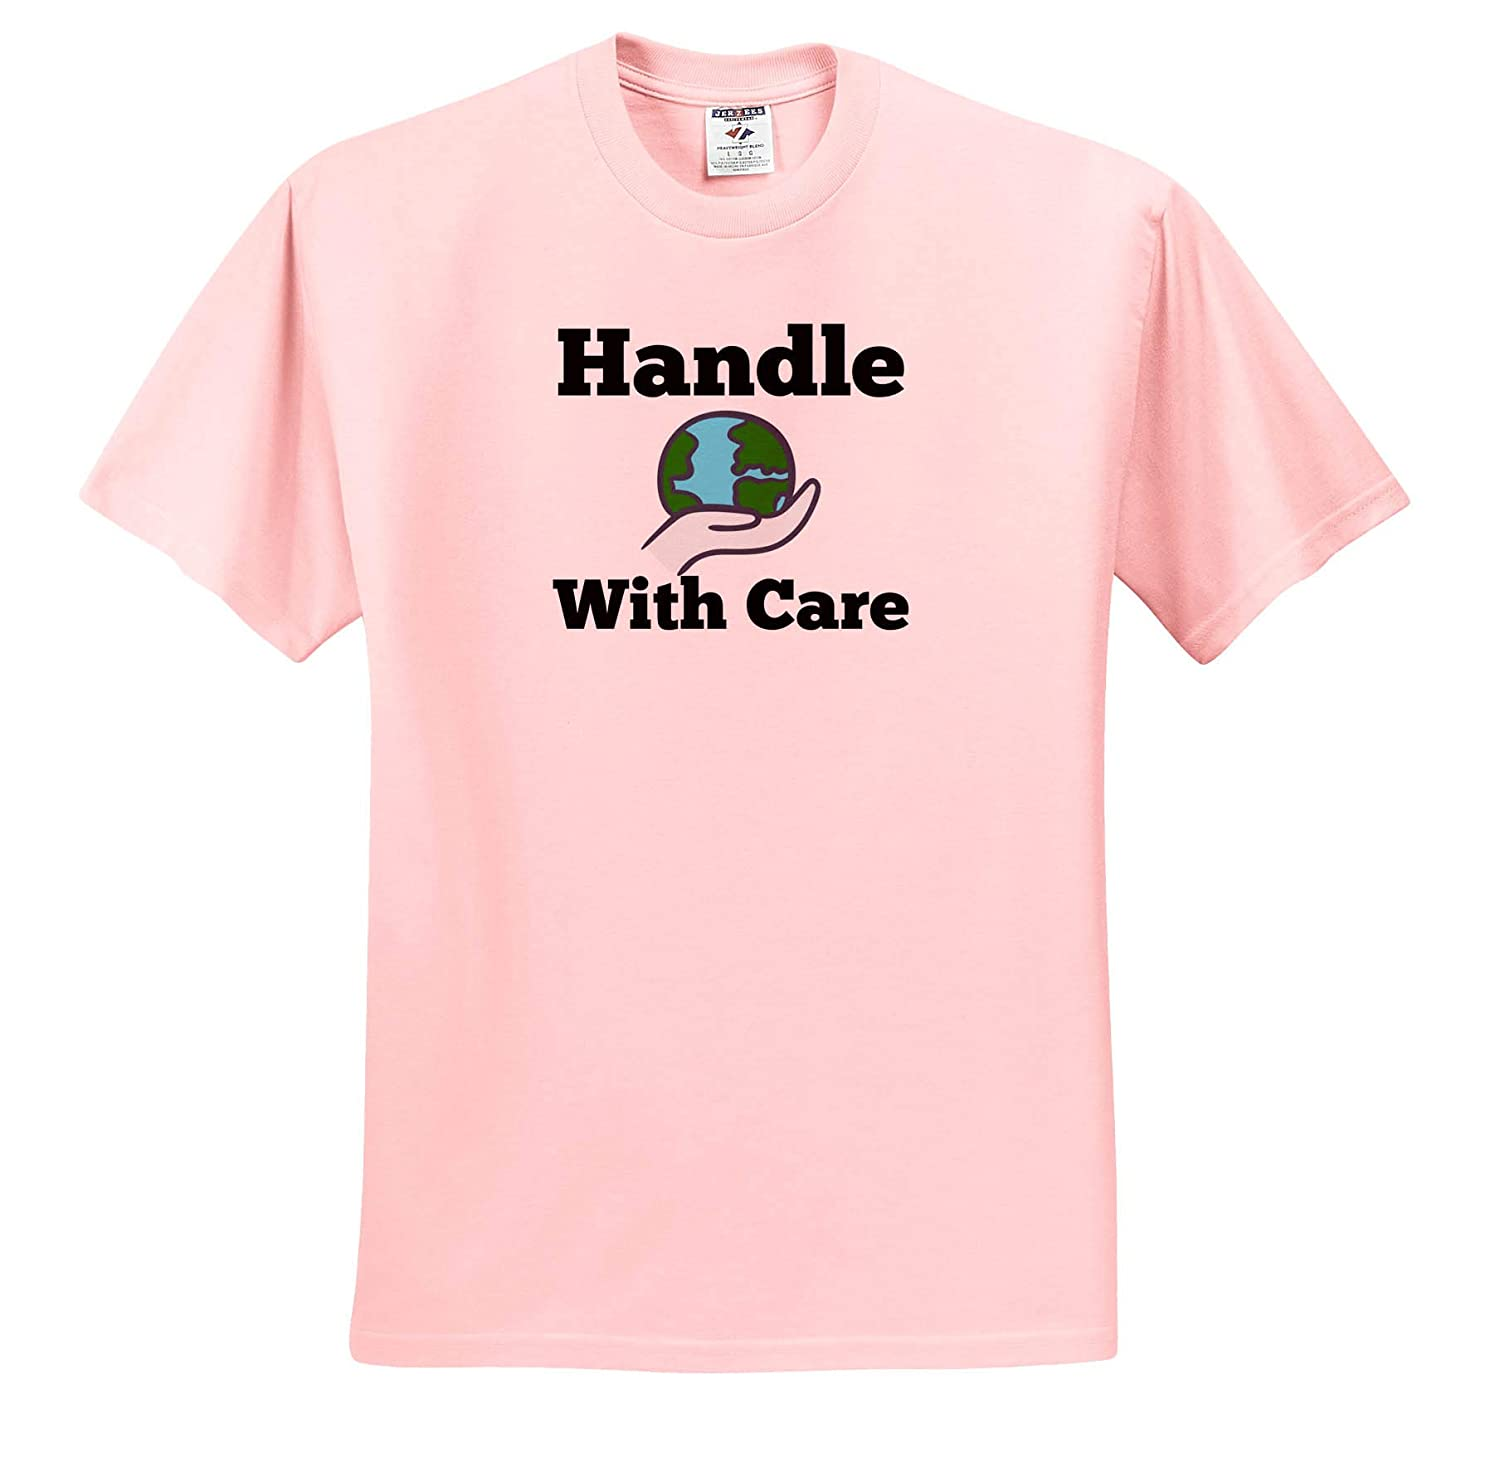 Adult T-Shirt XL Image of Handle with Care ts/_320207 3dRose Carrie Quote Image